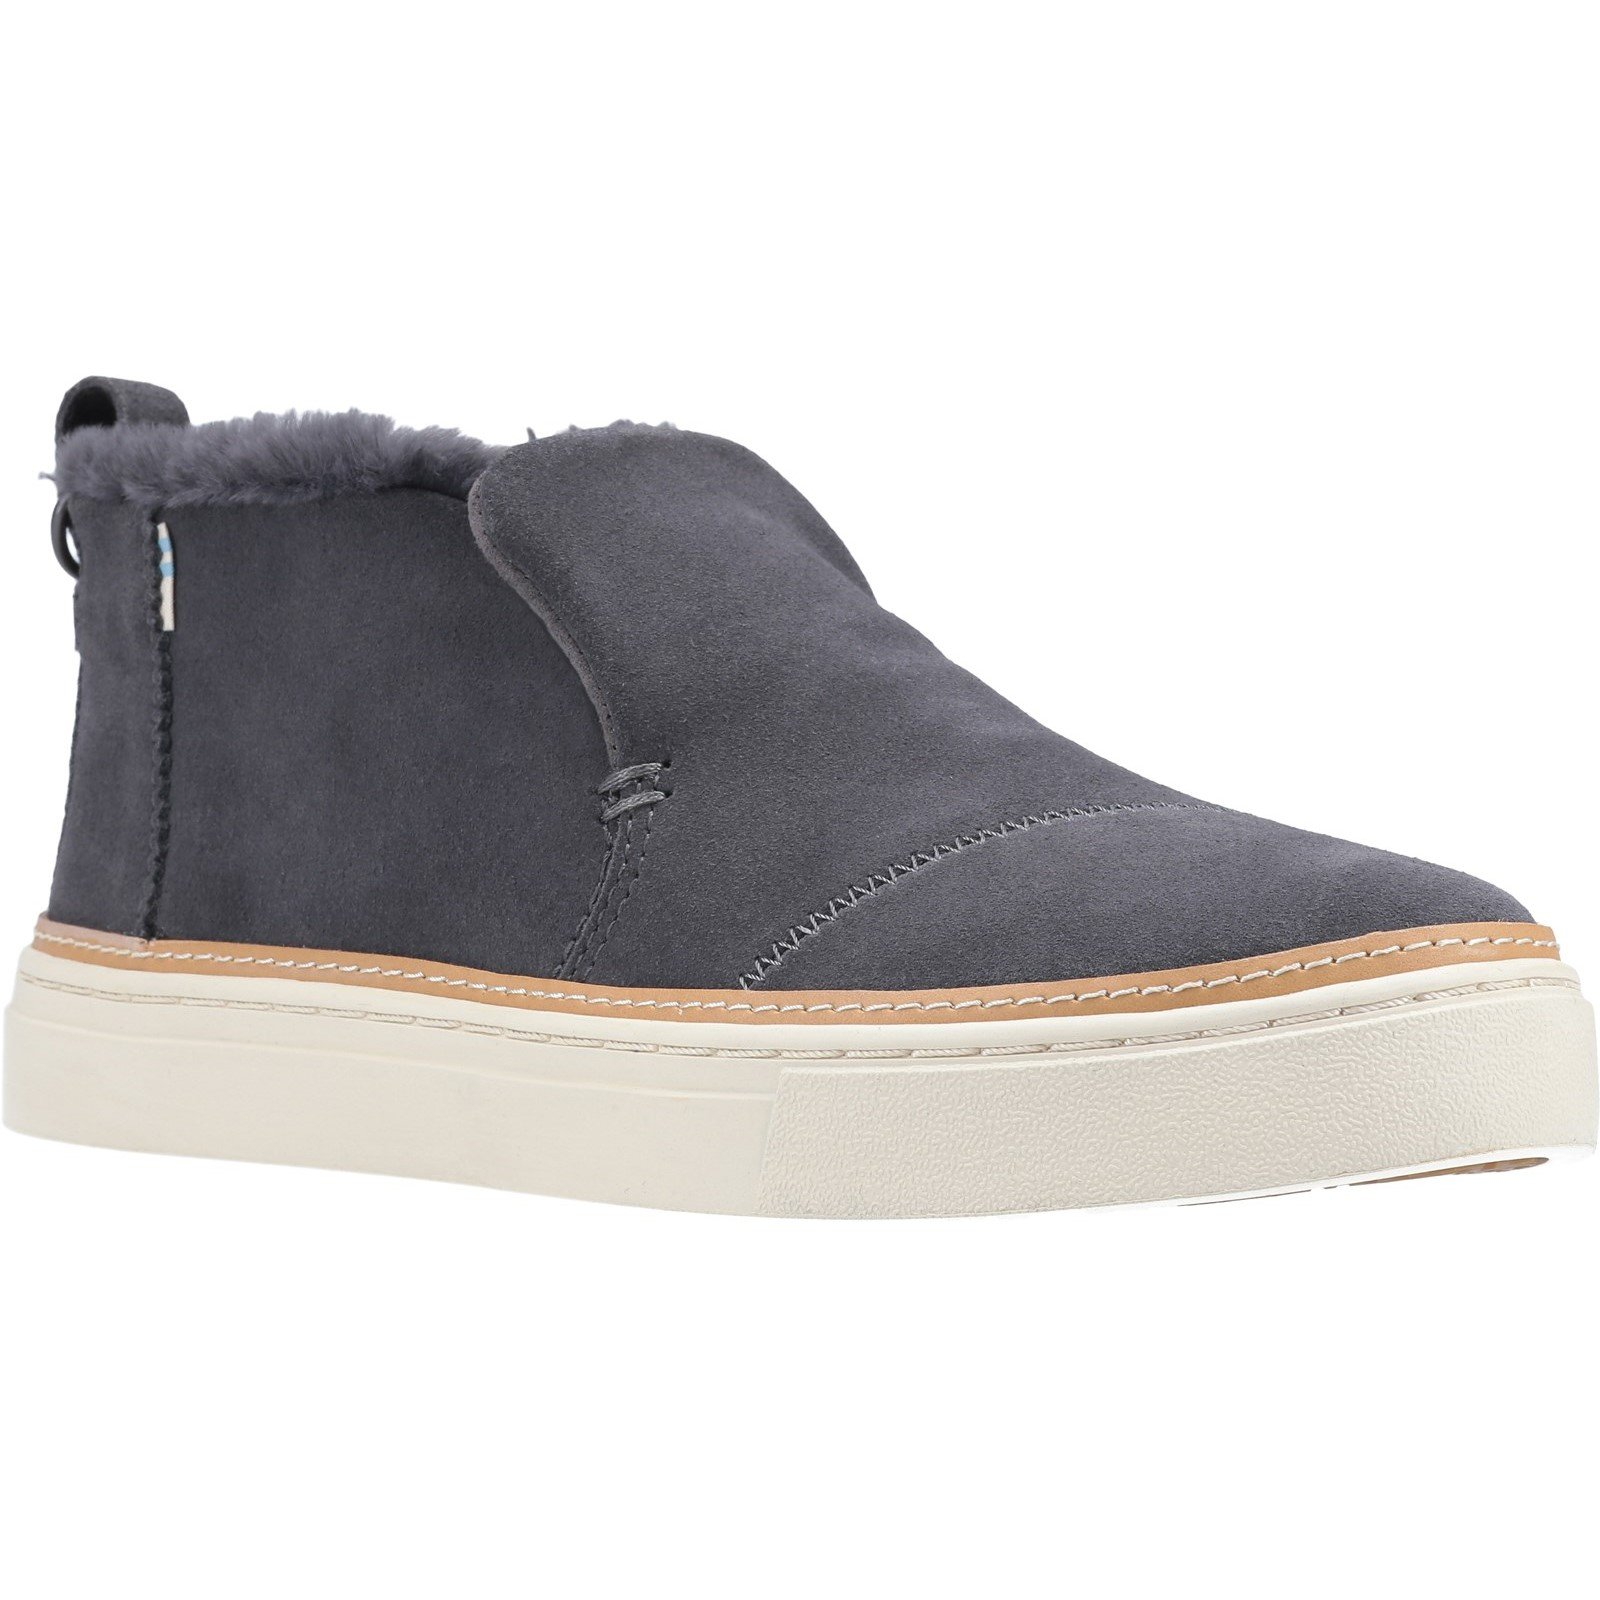 Hush Puppies Men's Paxton Chelsea Boot Various Colours 32882 - Gry Suede/Faux Shearling 7